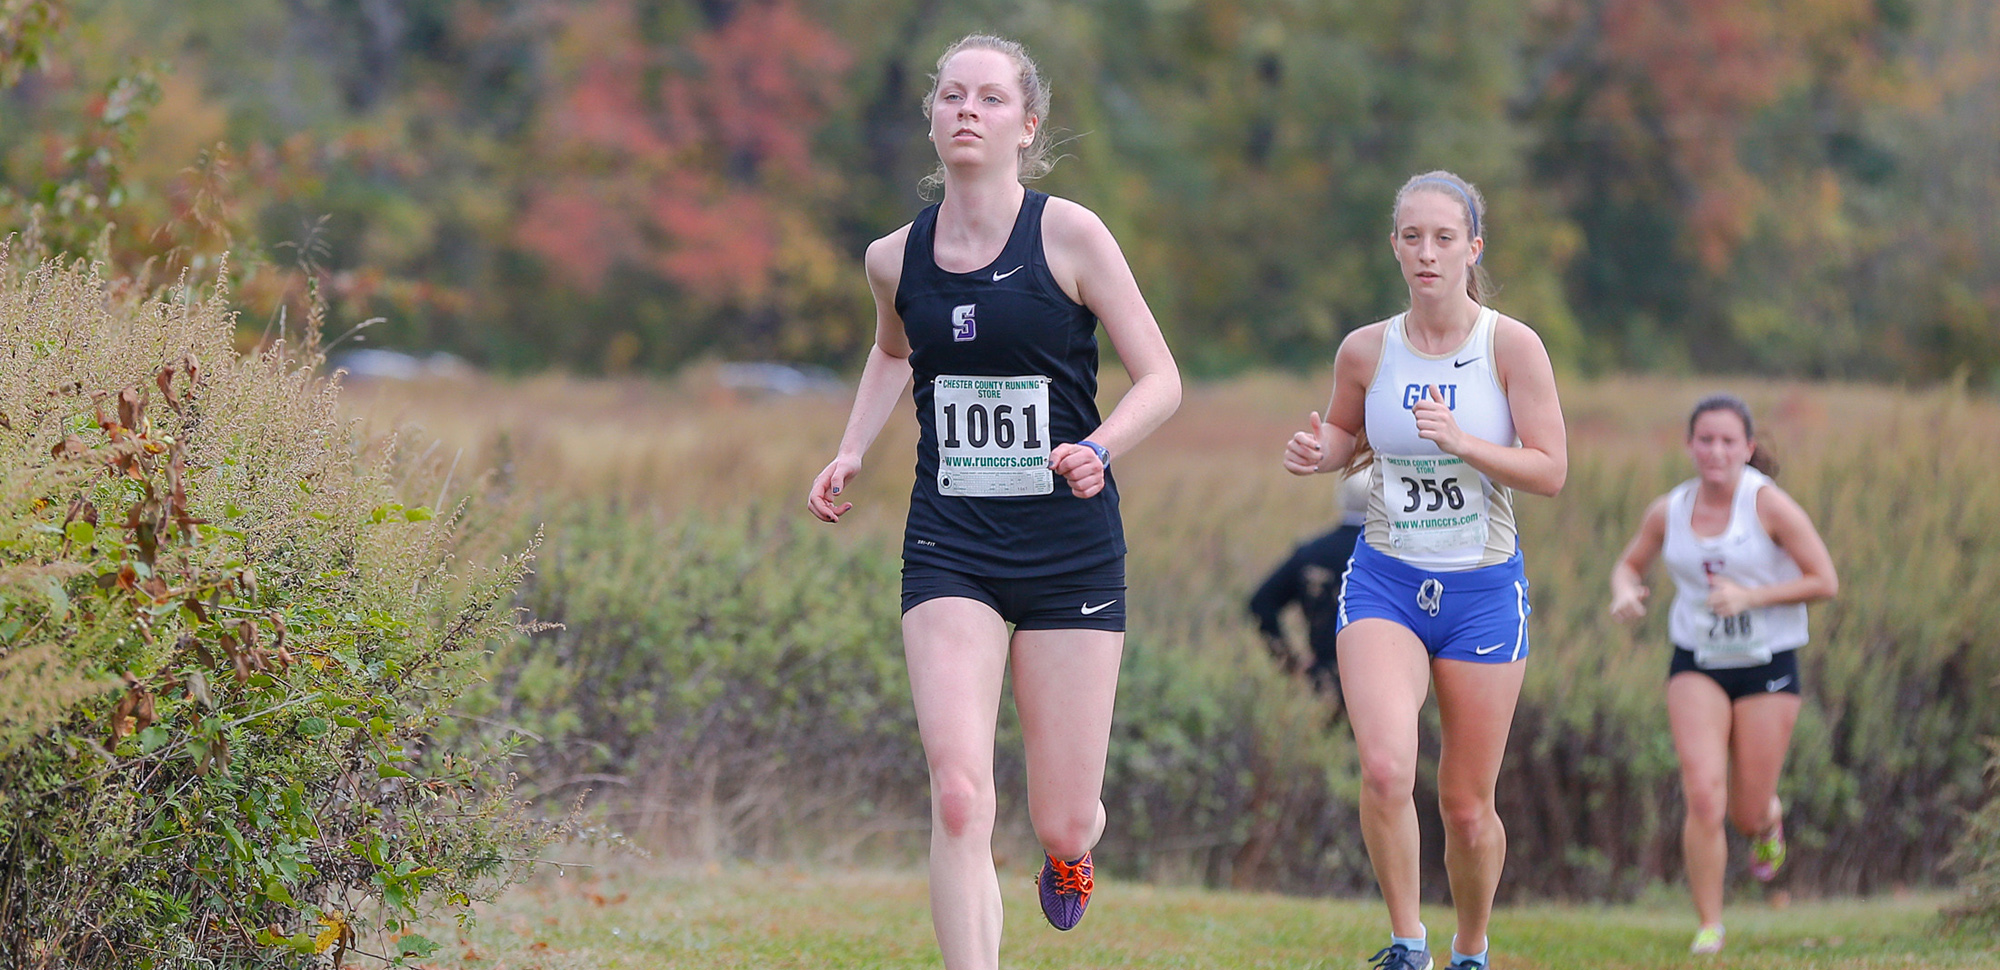 Senior Patricia Hoffman became the first Royal since 2013 to earn all-Landmark Conference honors by finishing 13th at the conference championships on Saturday.